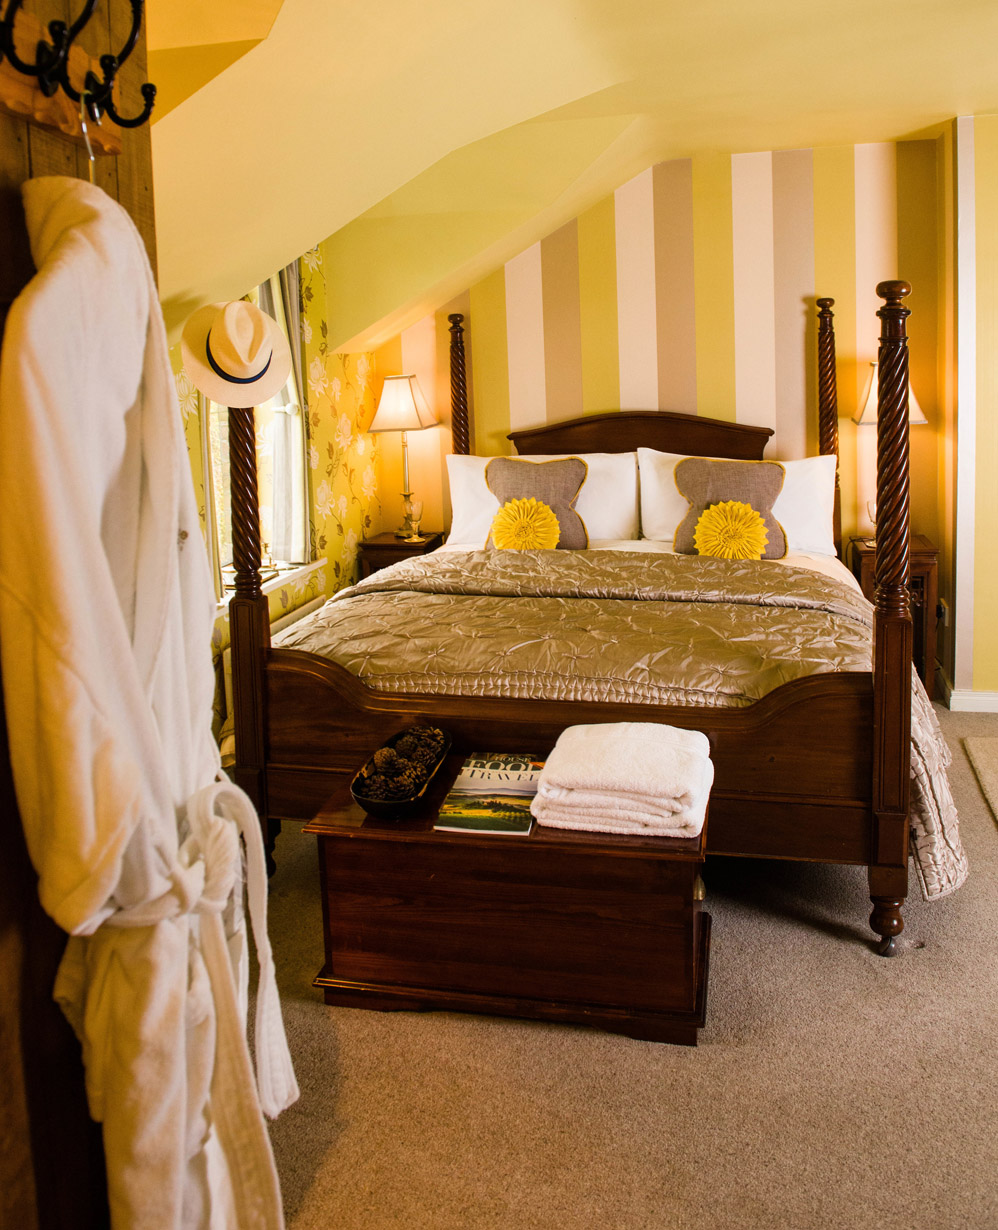 Lily's Room guest house, B&B Northern Ireland